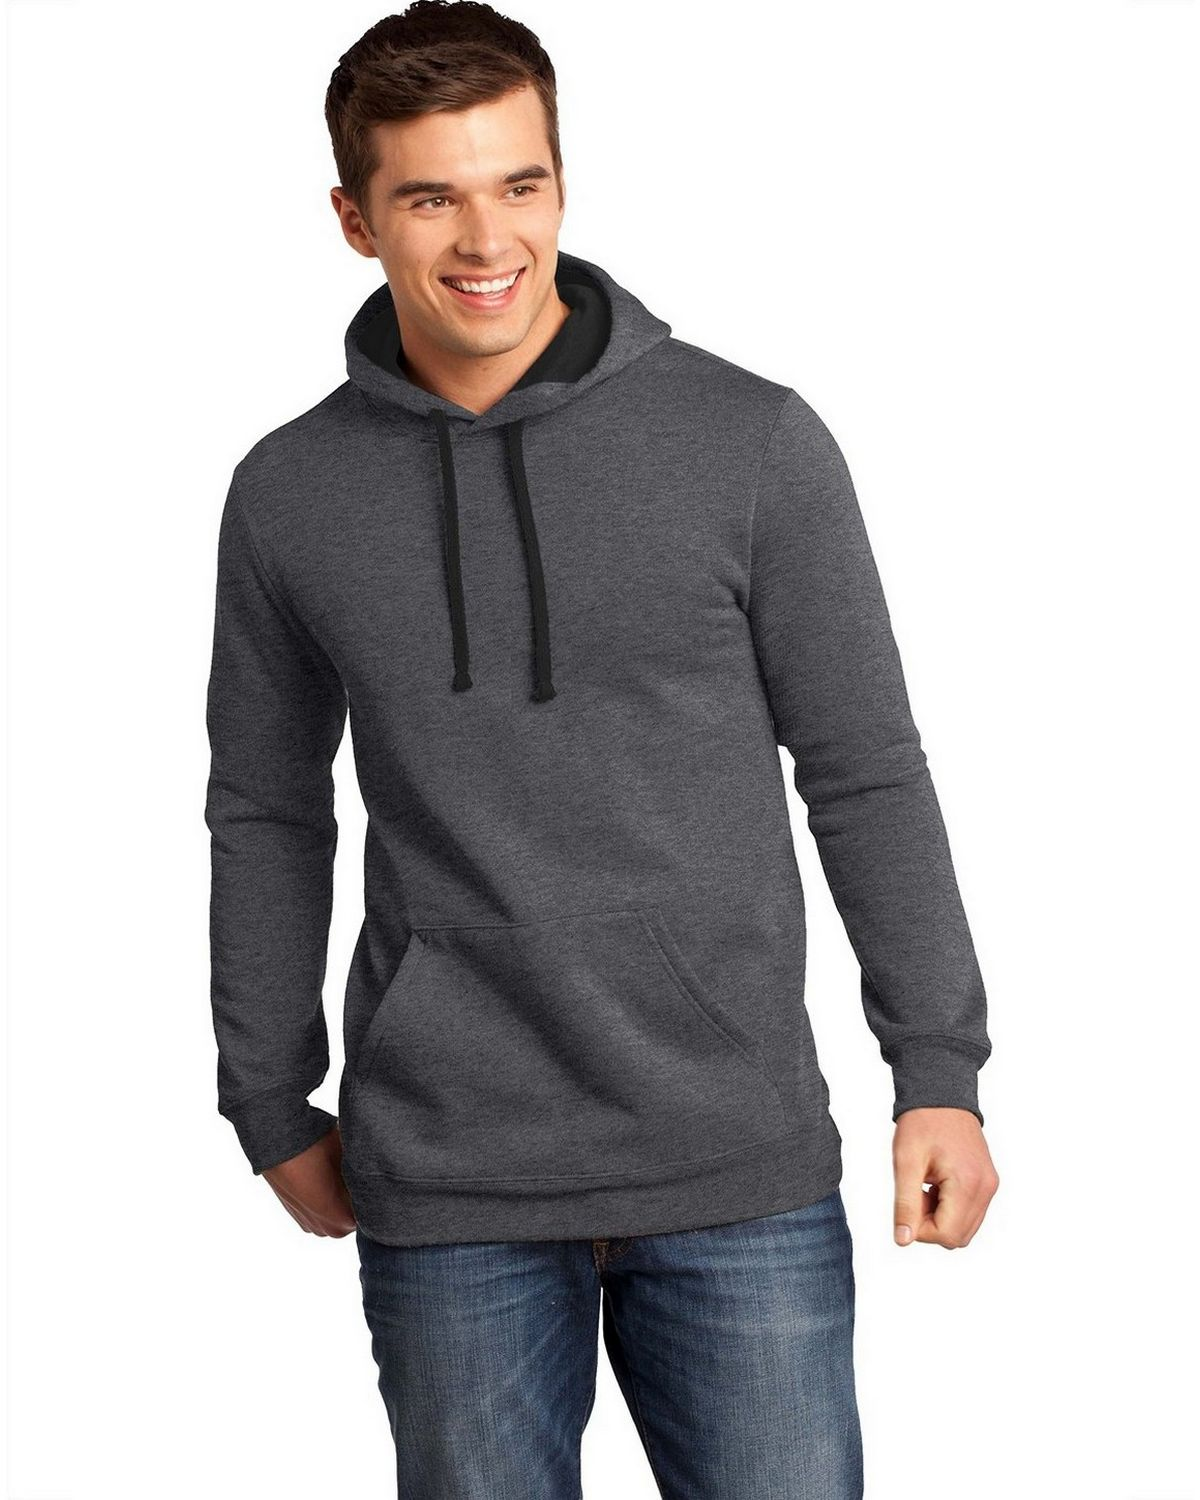 District DT810 Mens The Concert Fleece Hoodie - Heathered Charcoal - XS DT810